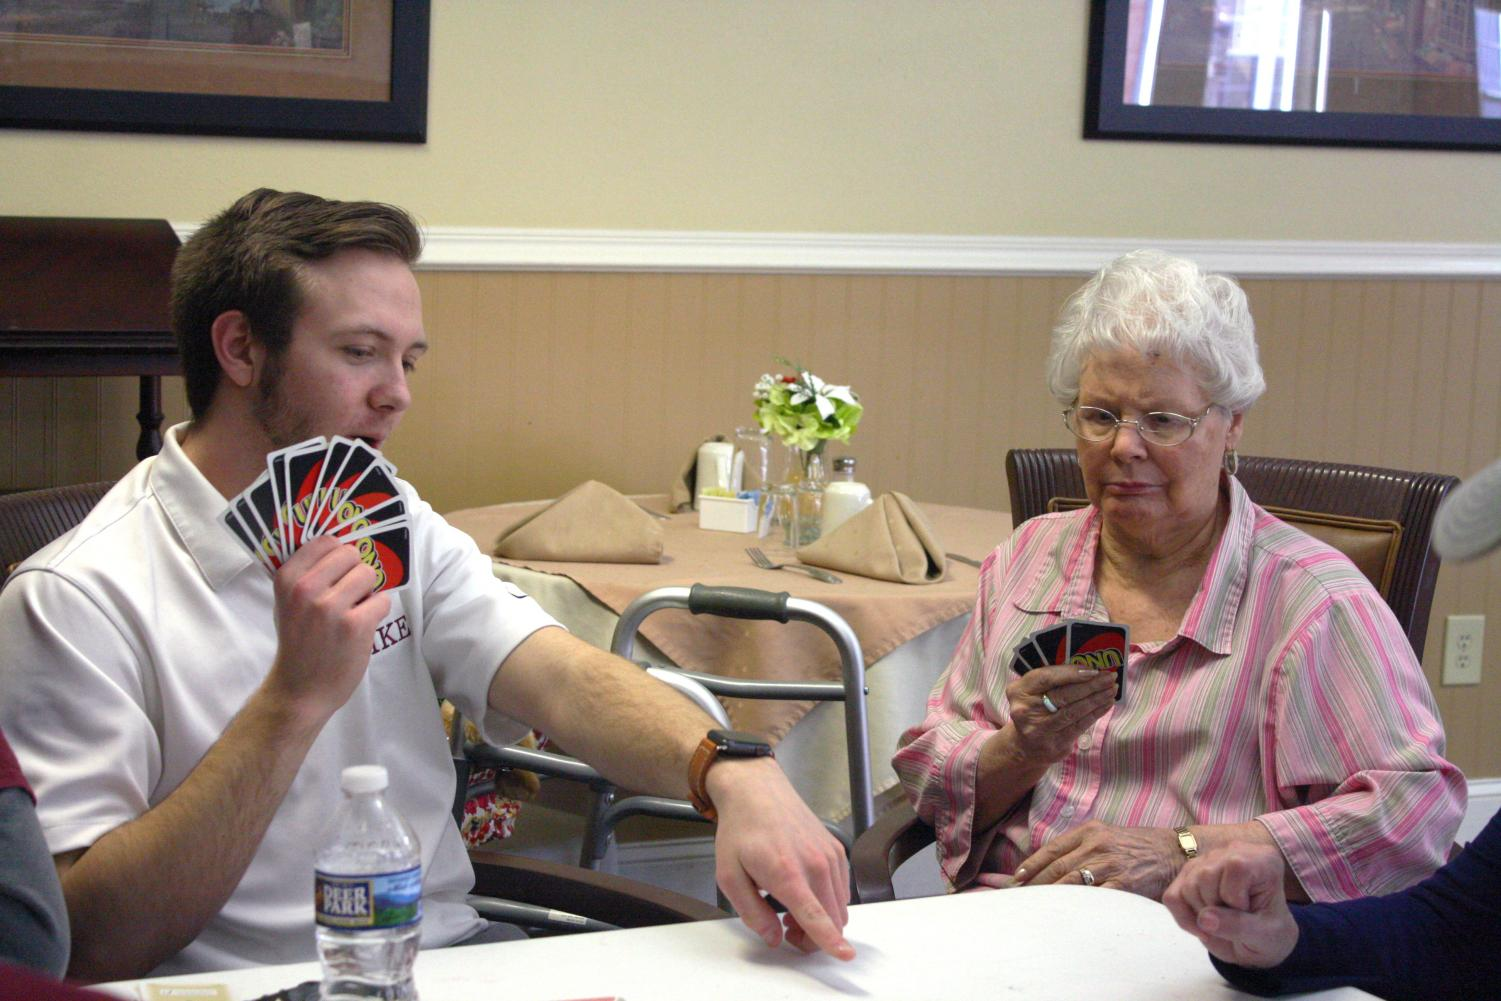 Will+explains+a+play+to+a+resident+during+a+game+of+UNO.